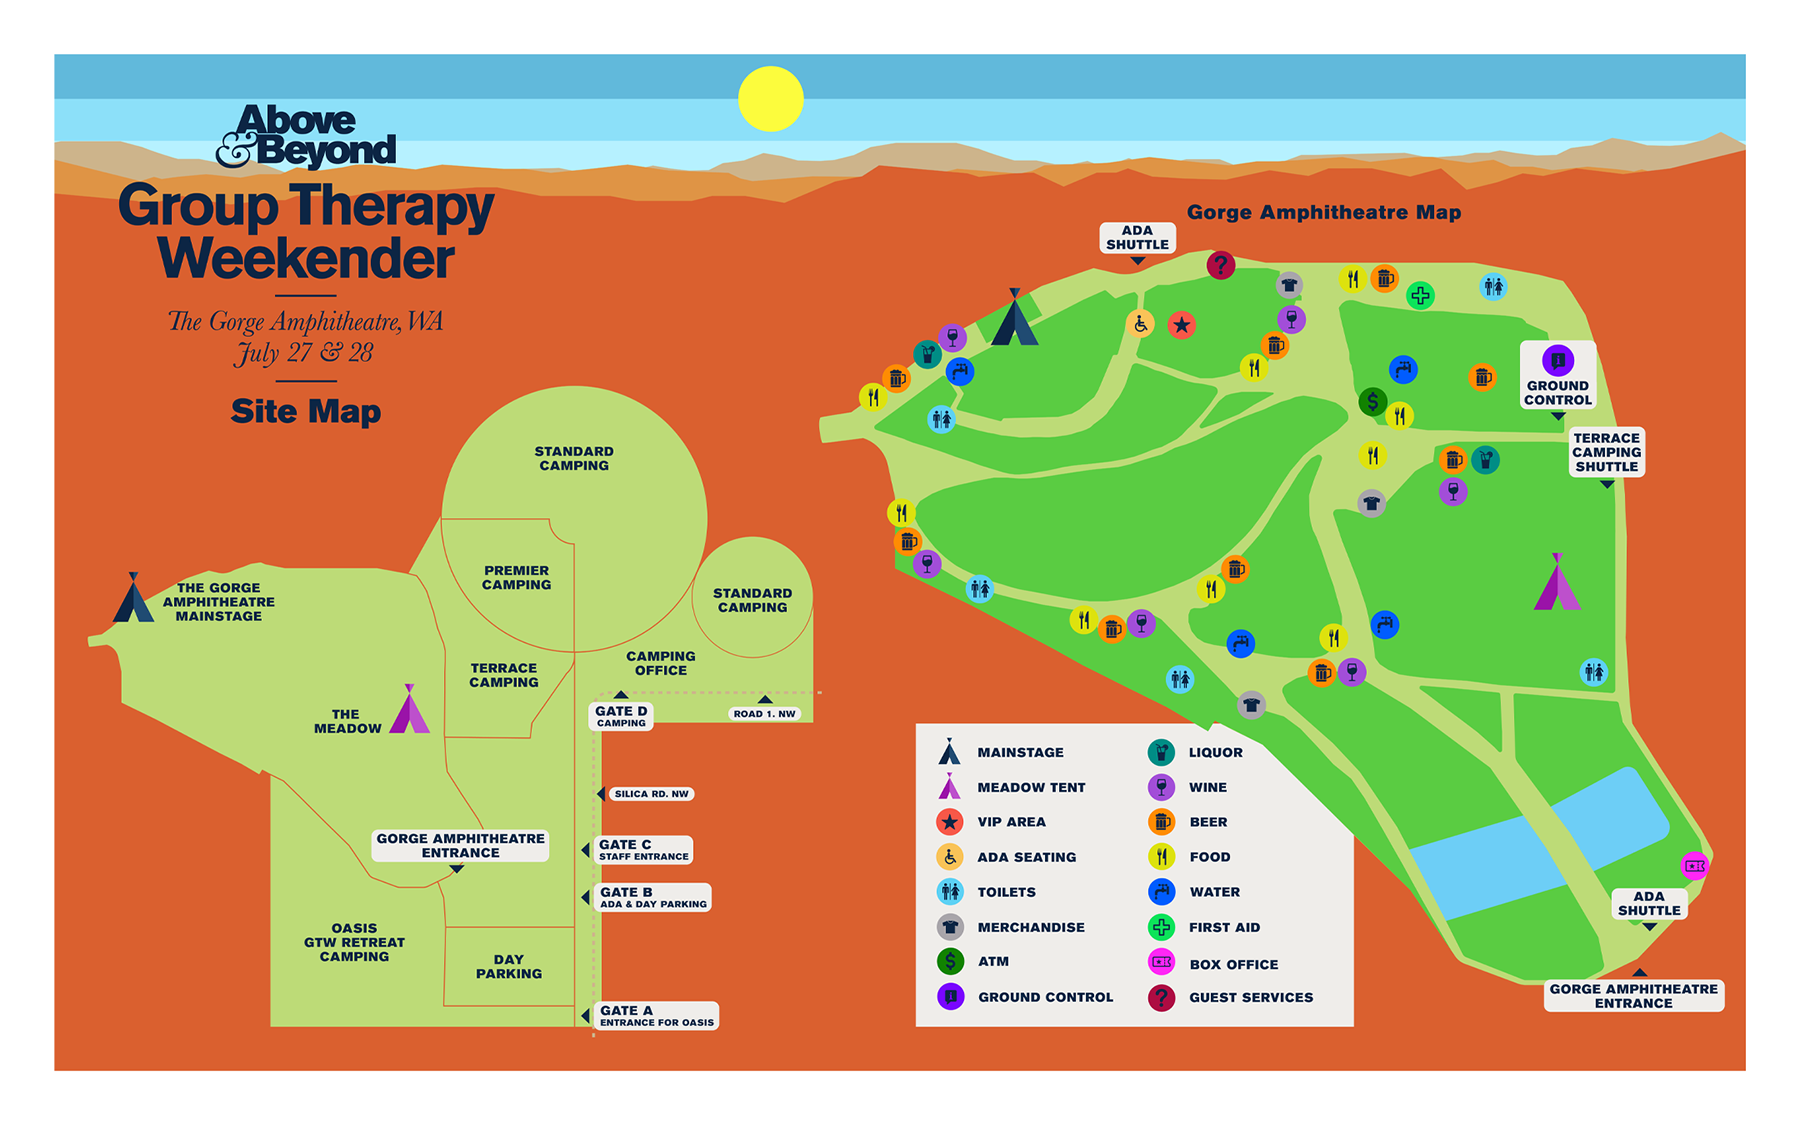 Group Therapy Weekender Site Map